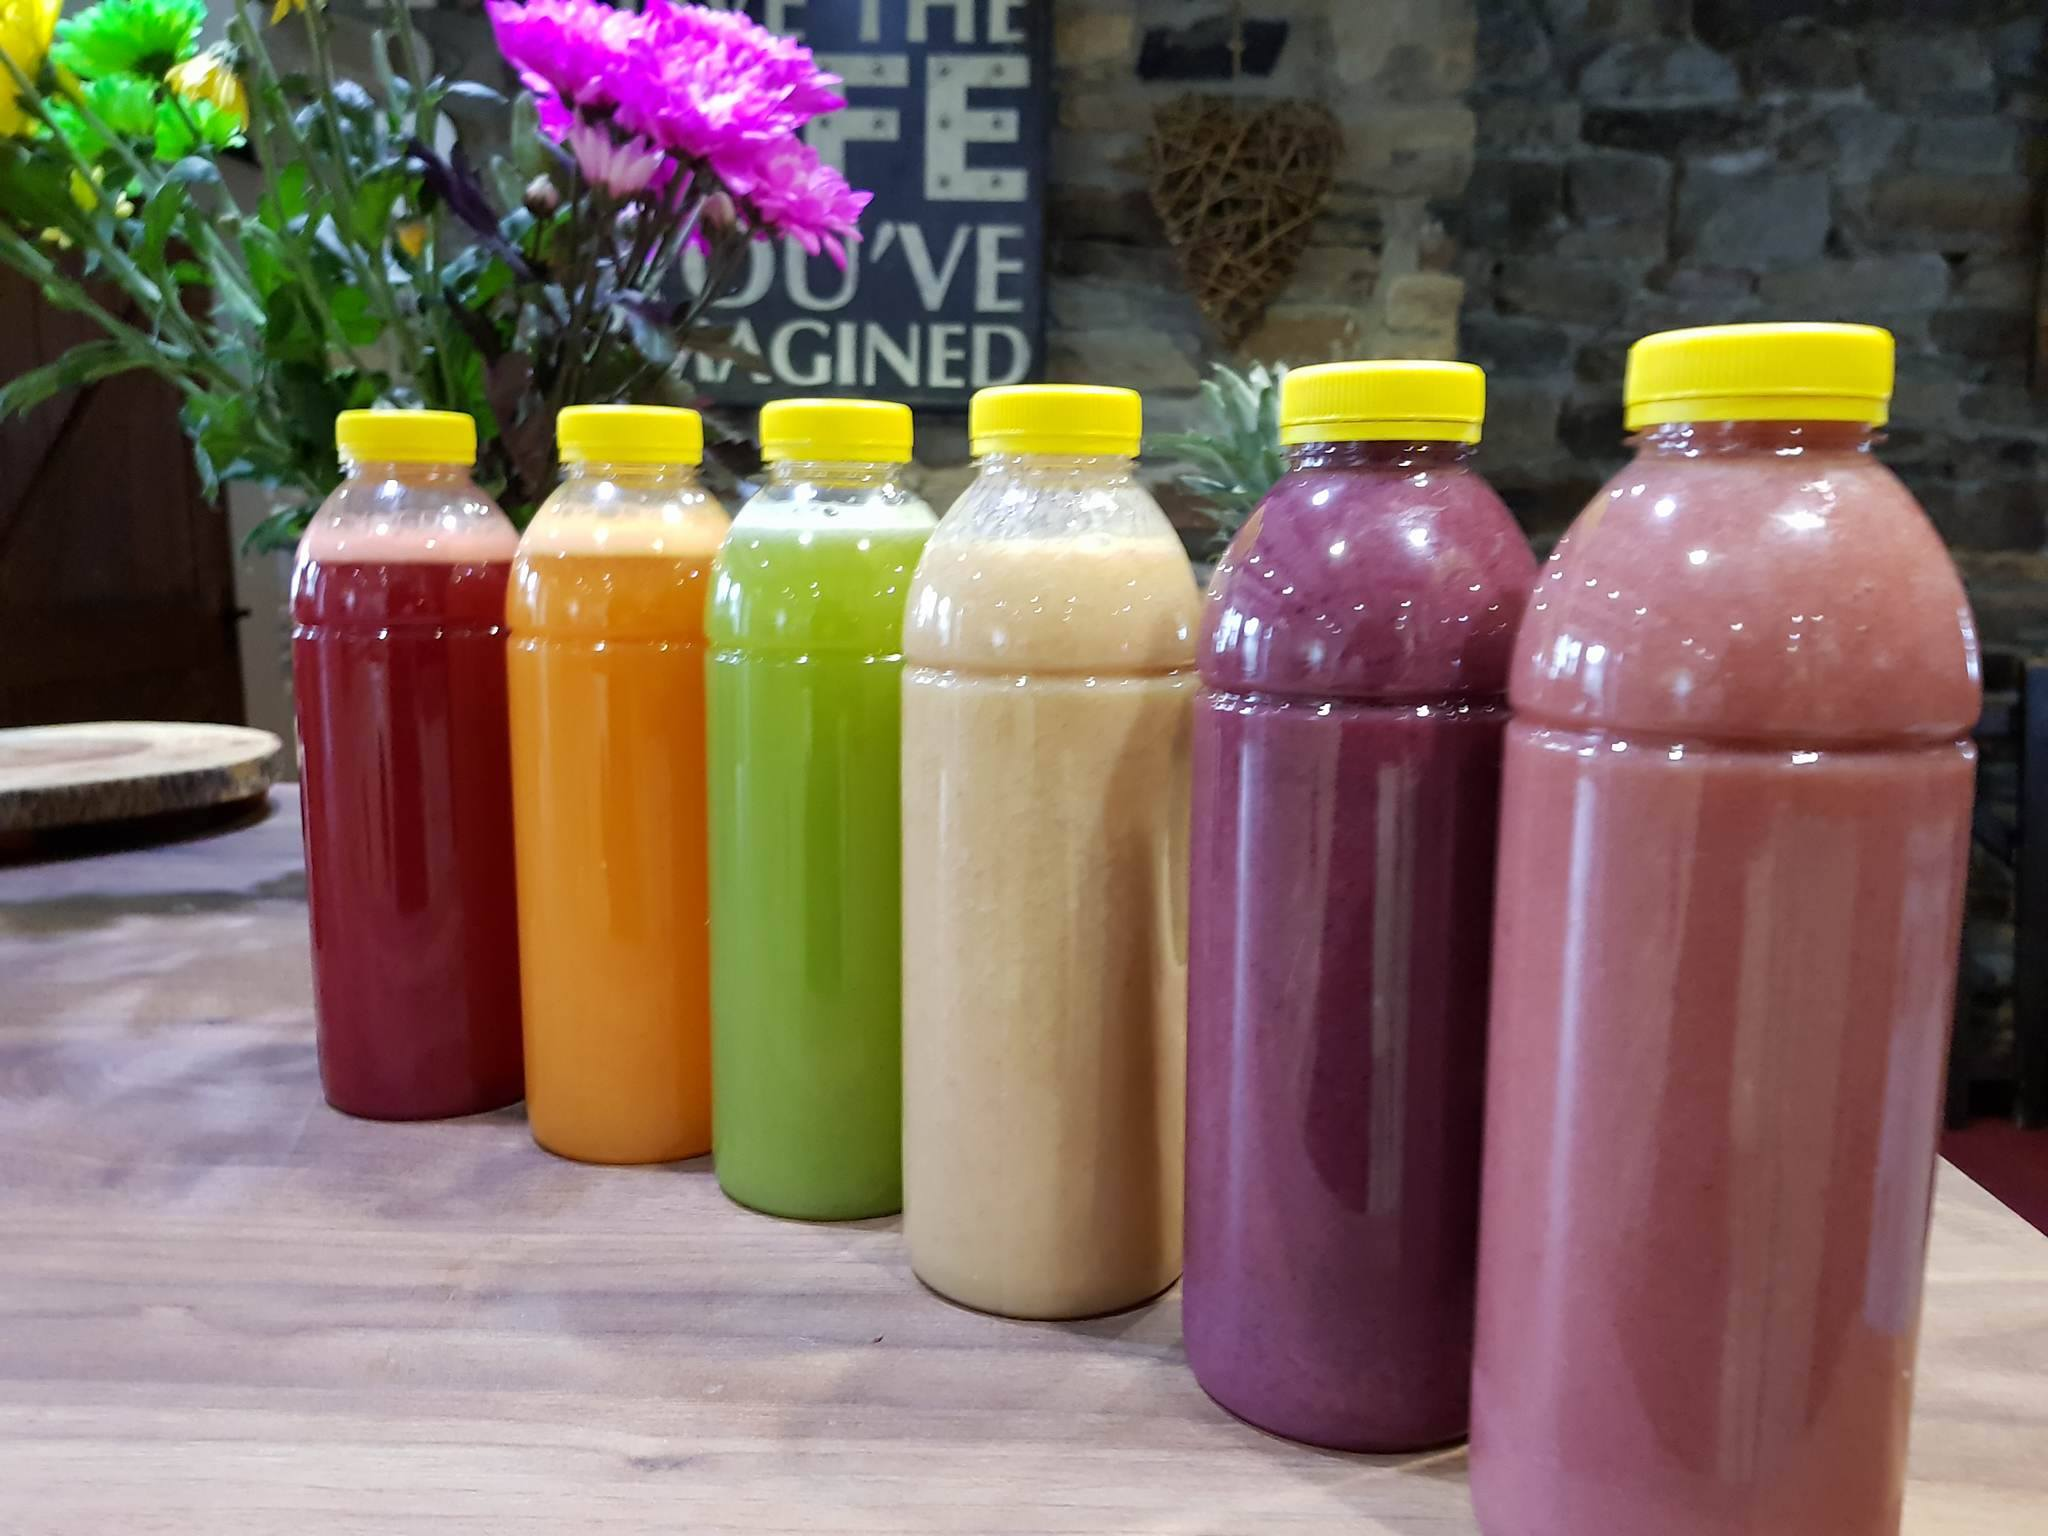 Bespoke Juice & Smoothie Plans - Weather you are a athlete looking for an extra boost. If you want a kick start to decreasing body fat levels or simple a boost in nutrients to feel reenergised, focused and ready to take on the day. Find out more about our juice plans…